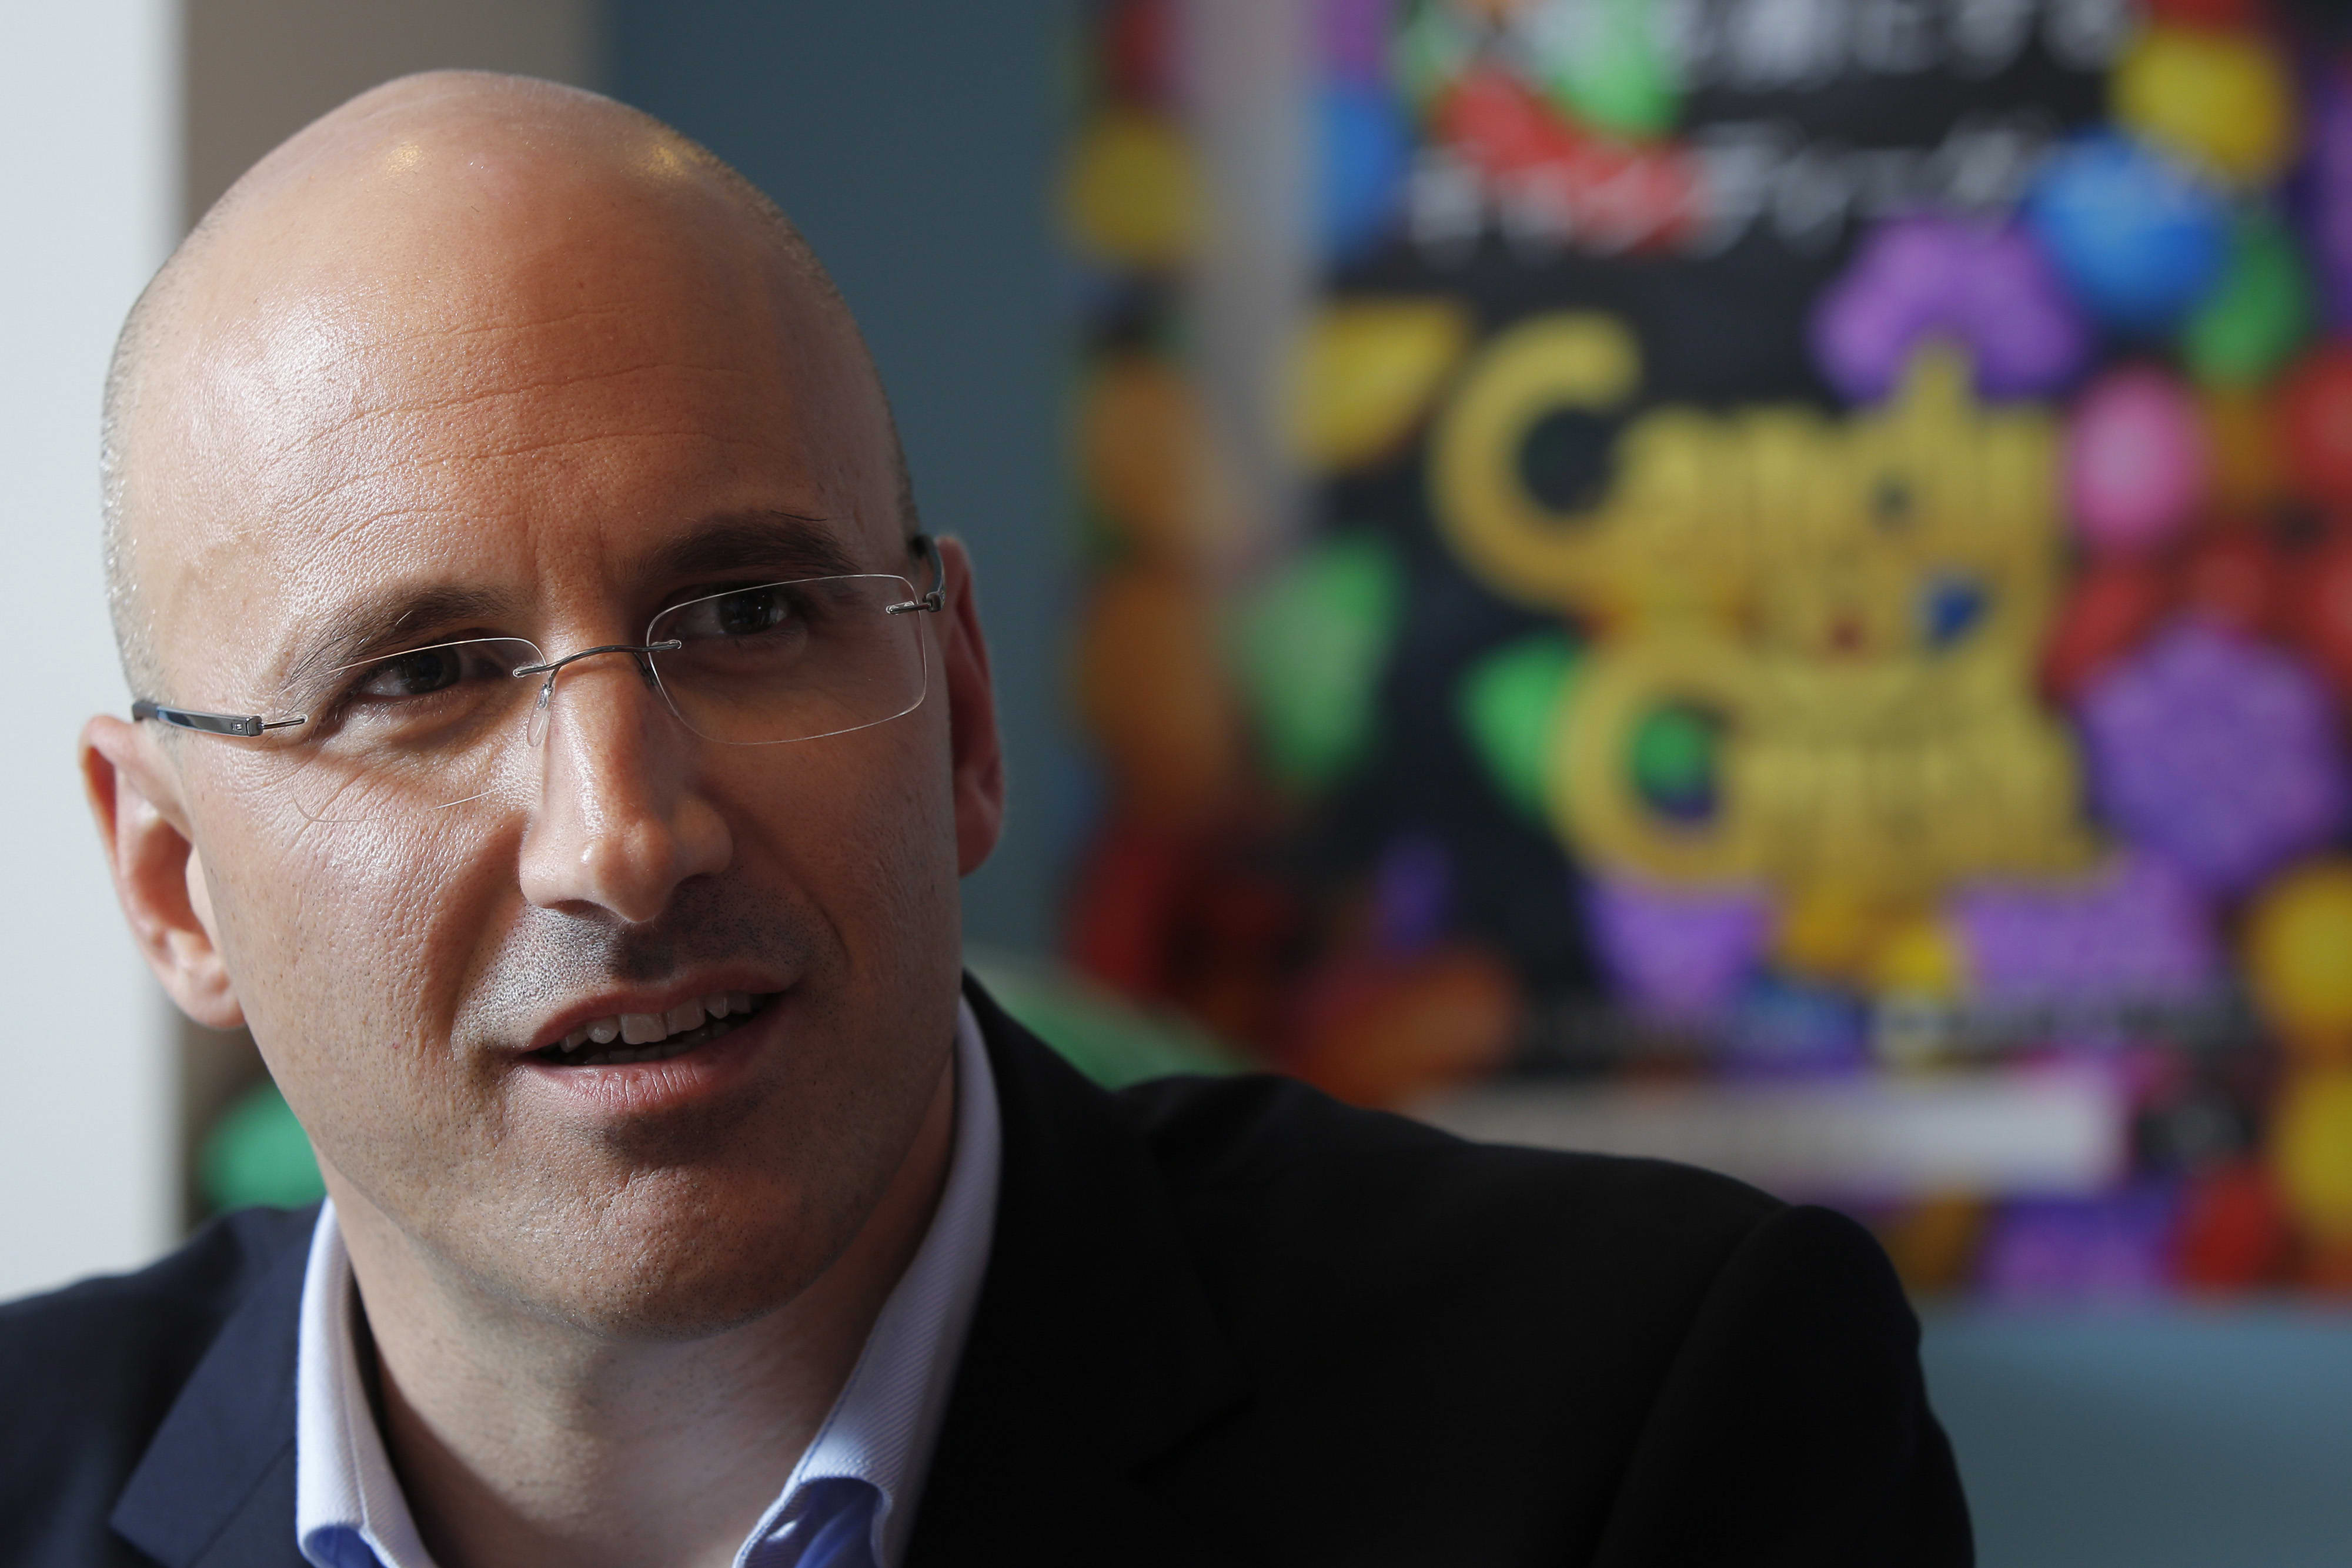 King co-founder Riccardo Zacconi says Facebook nearly crushed his company